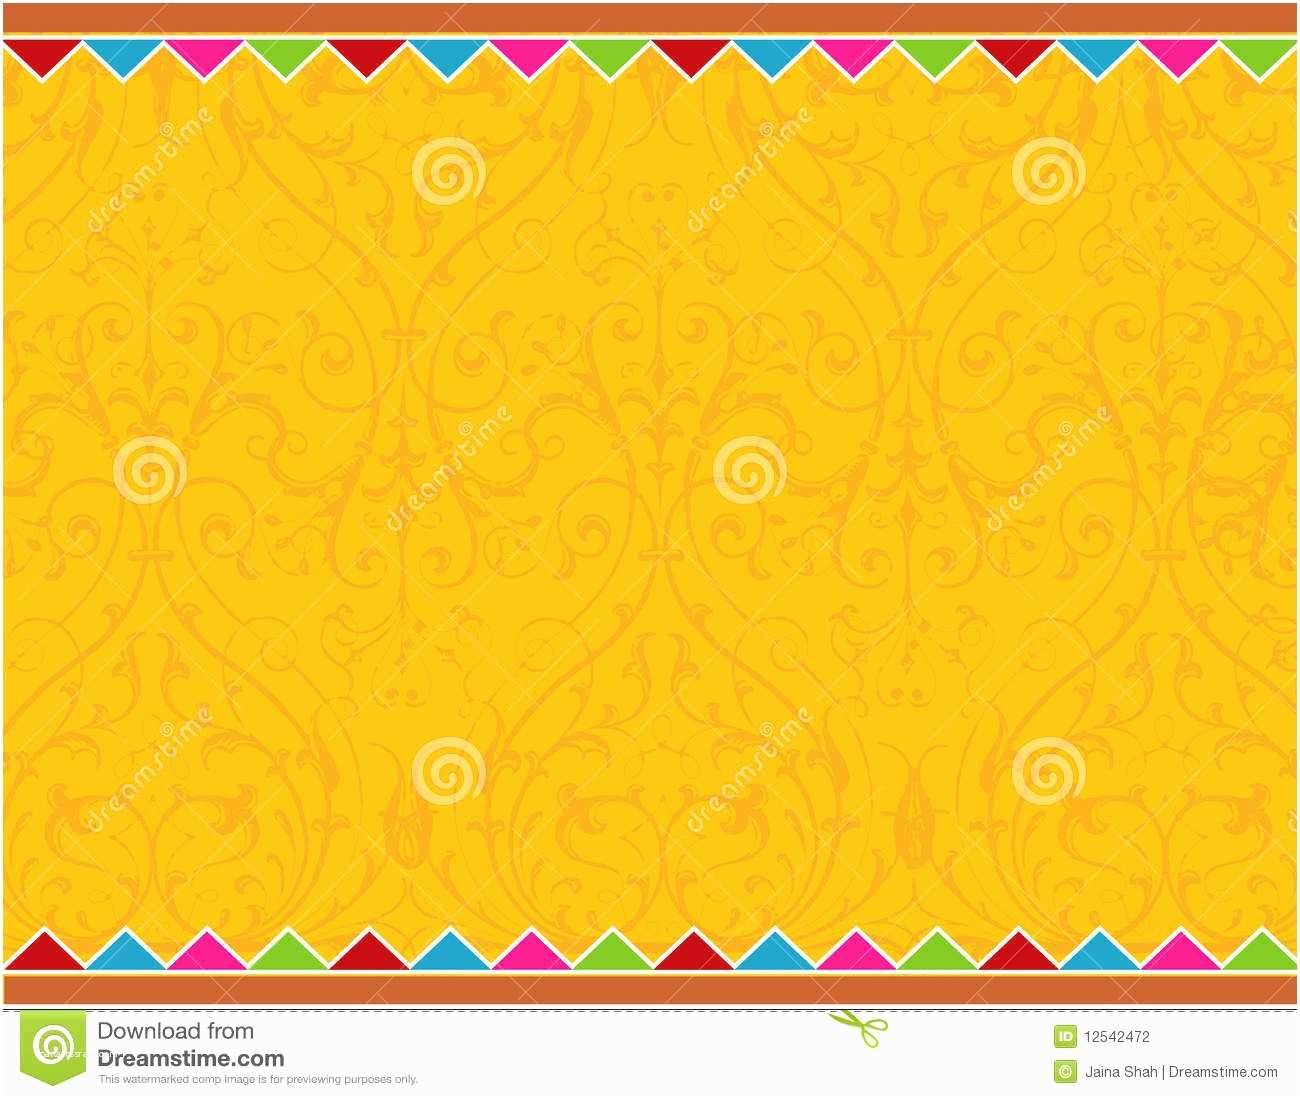 Background Images for Wedding Invitation Cards Invitation Card Background Stock Vector Illustration Of